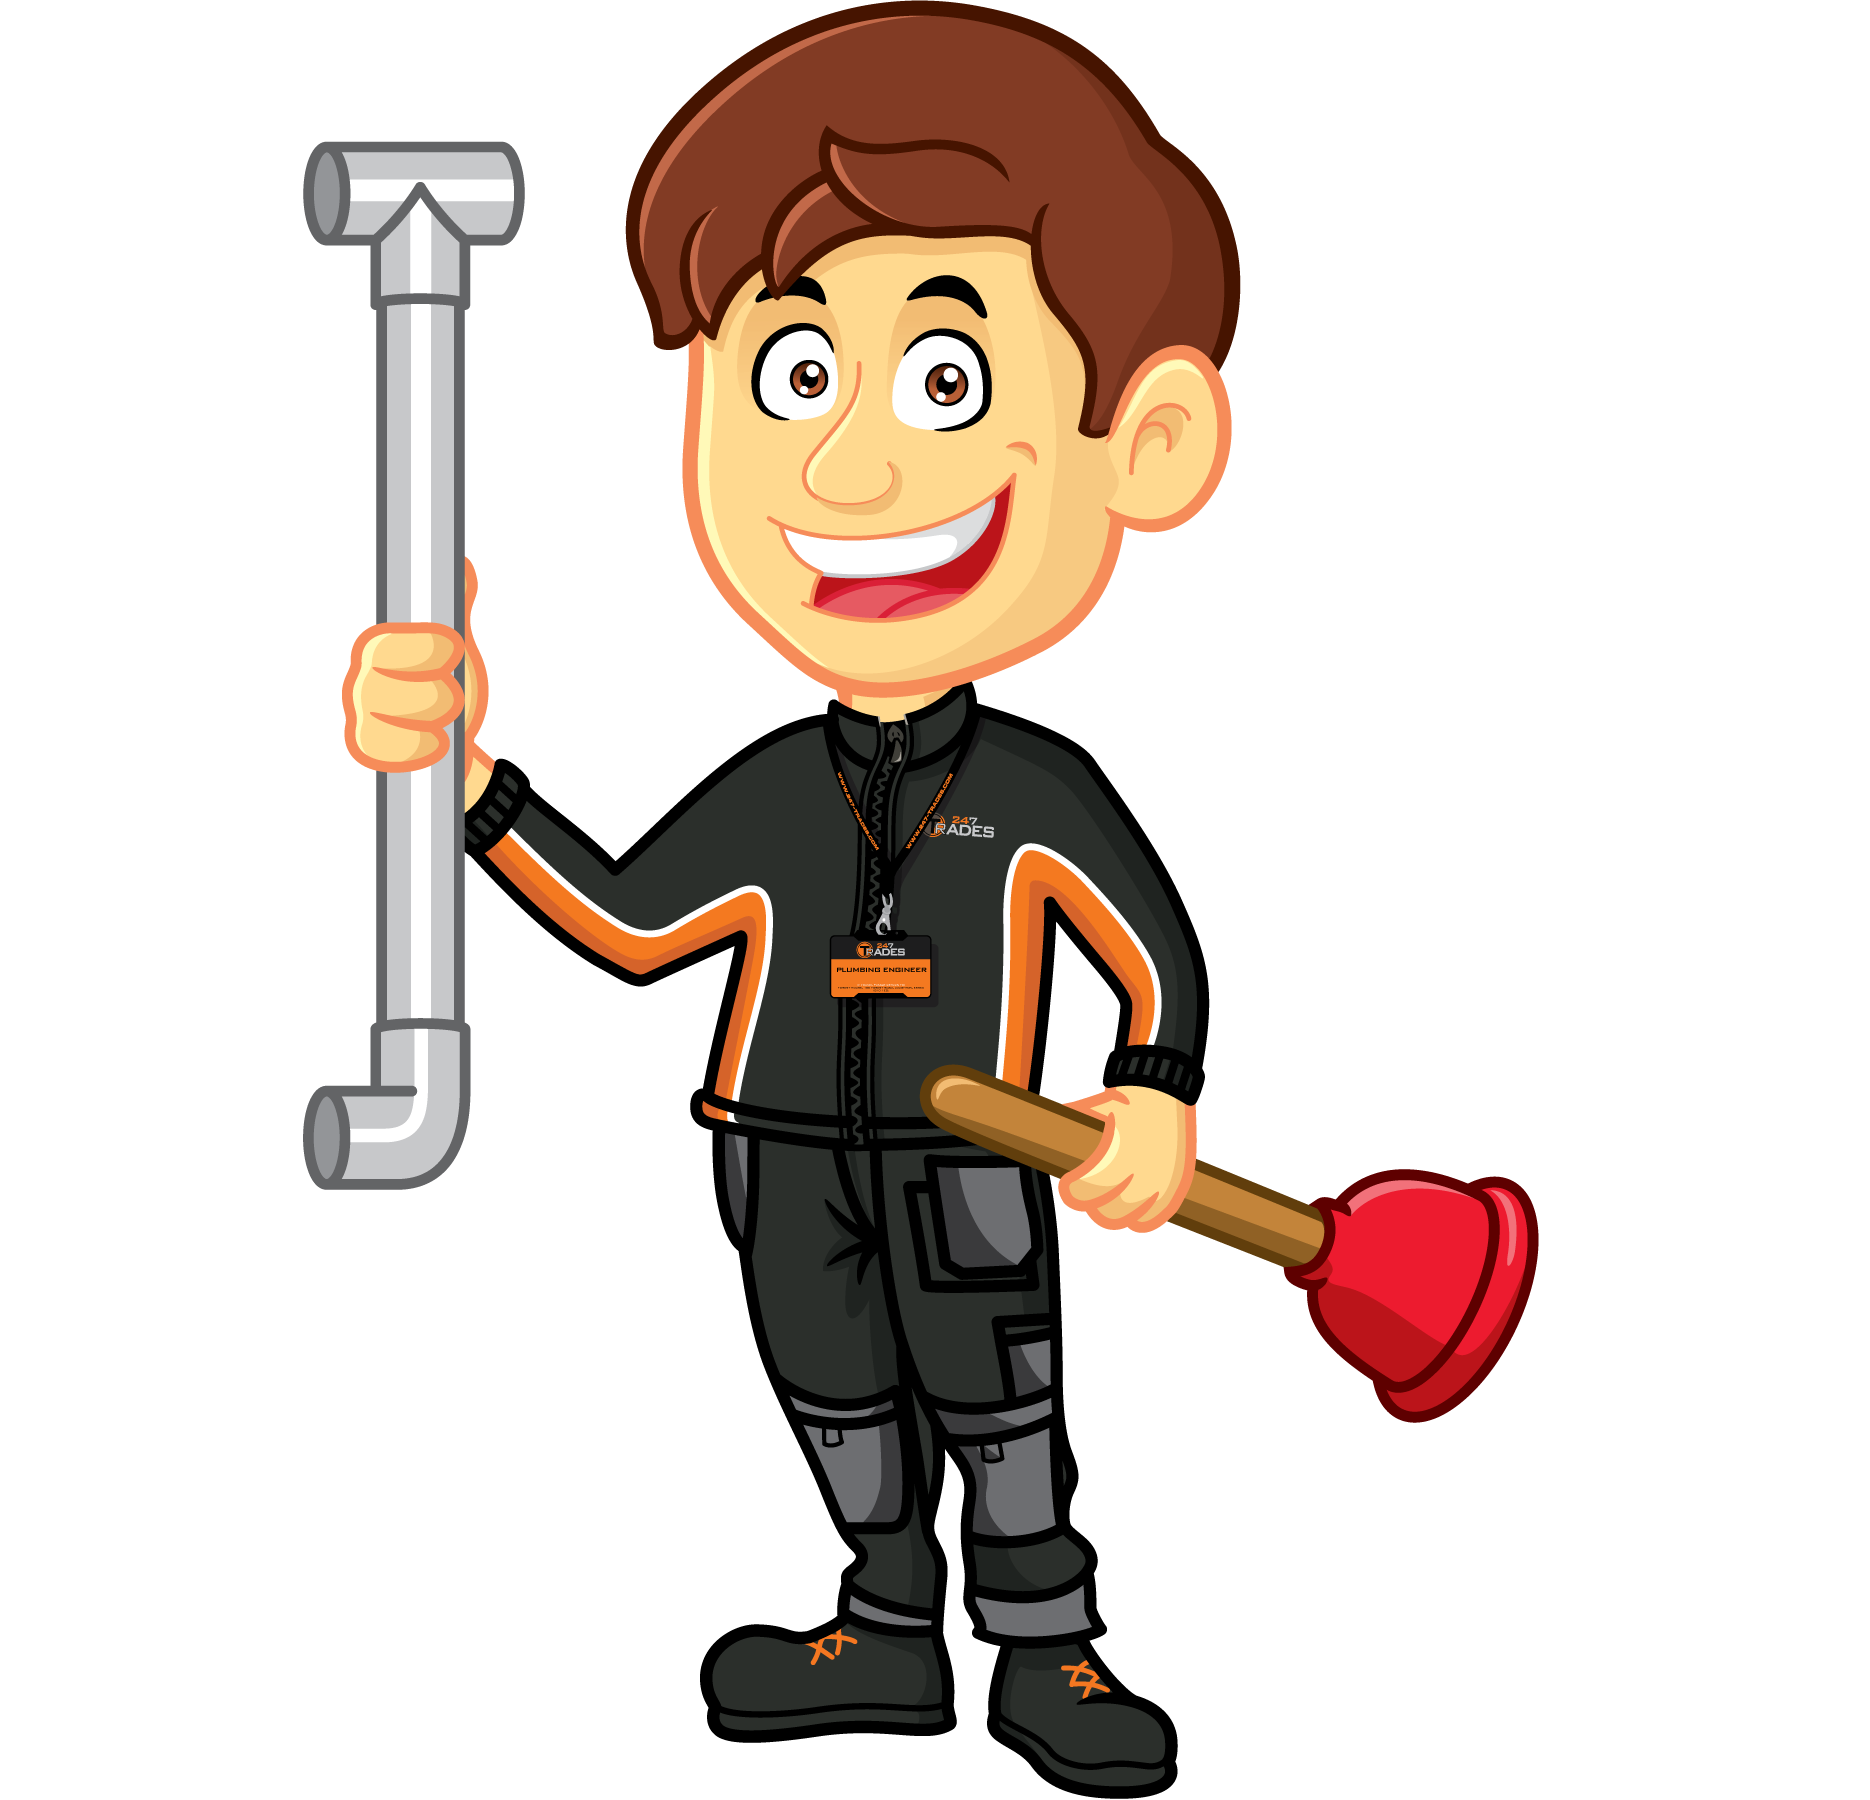 trades plumbers in. Telephone clipart solid thing